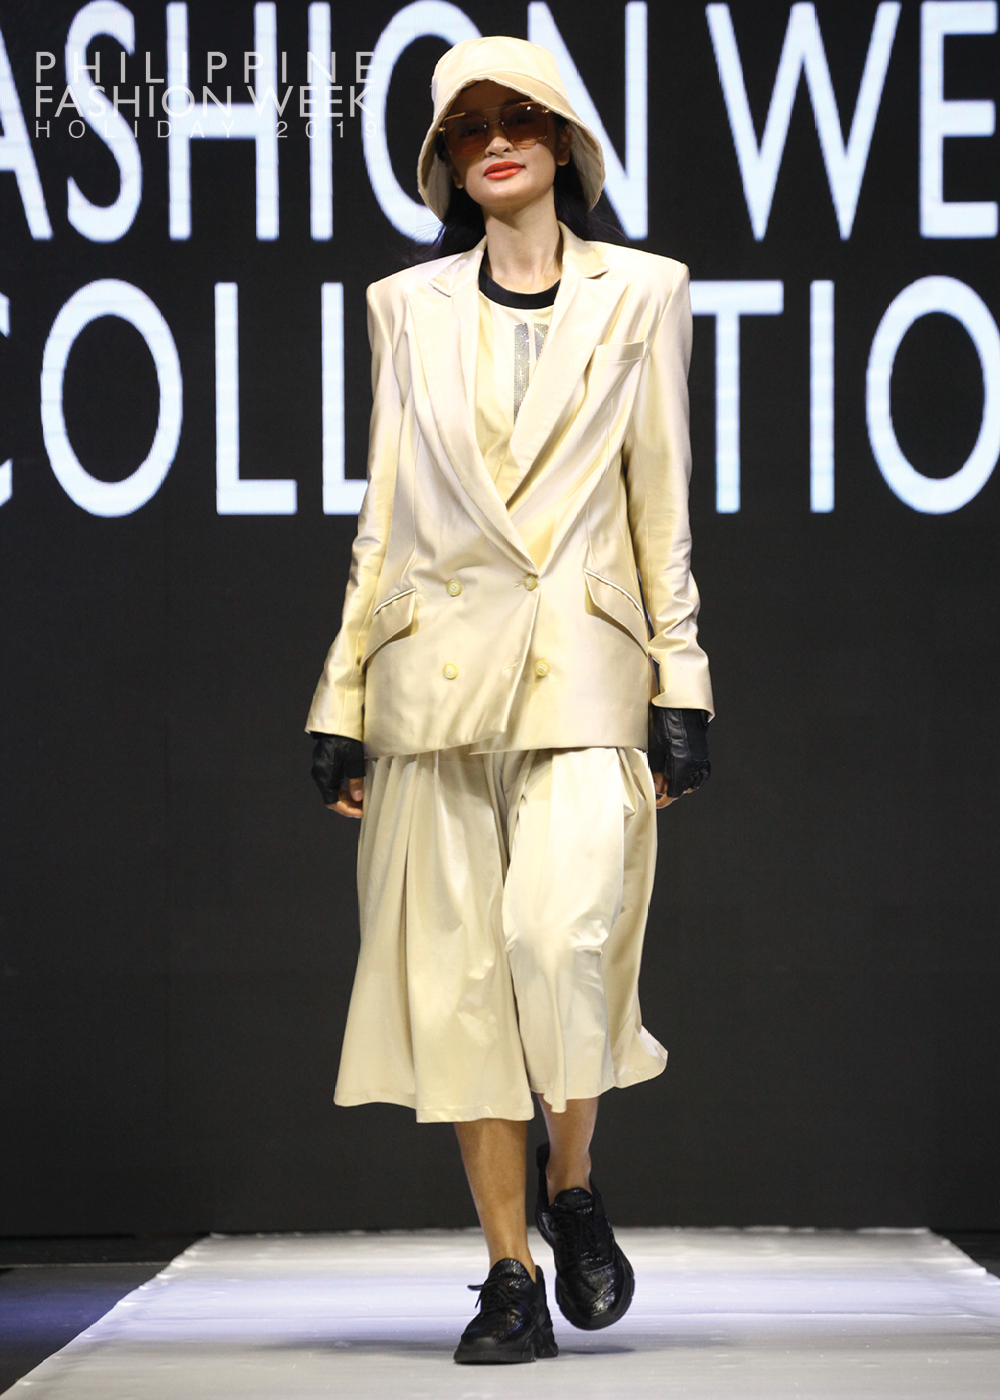 PhFW_collection show3.jpg